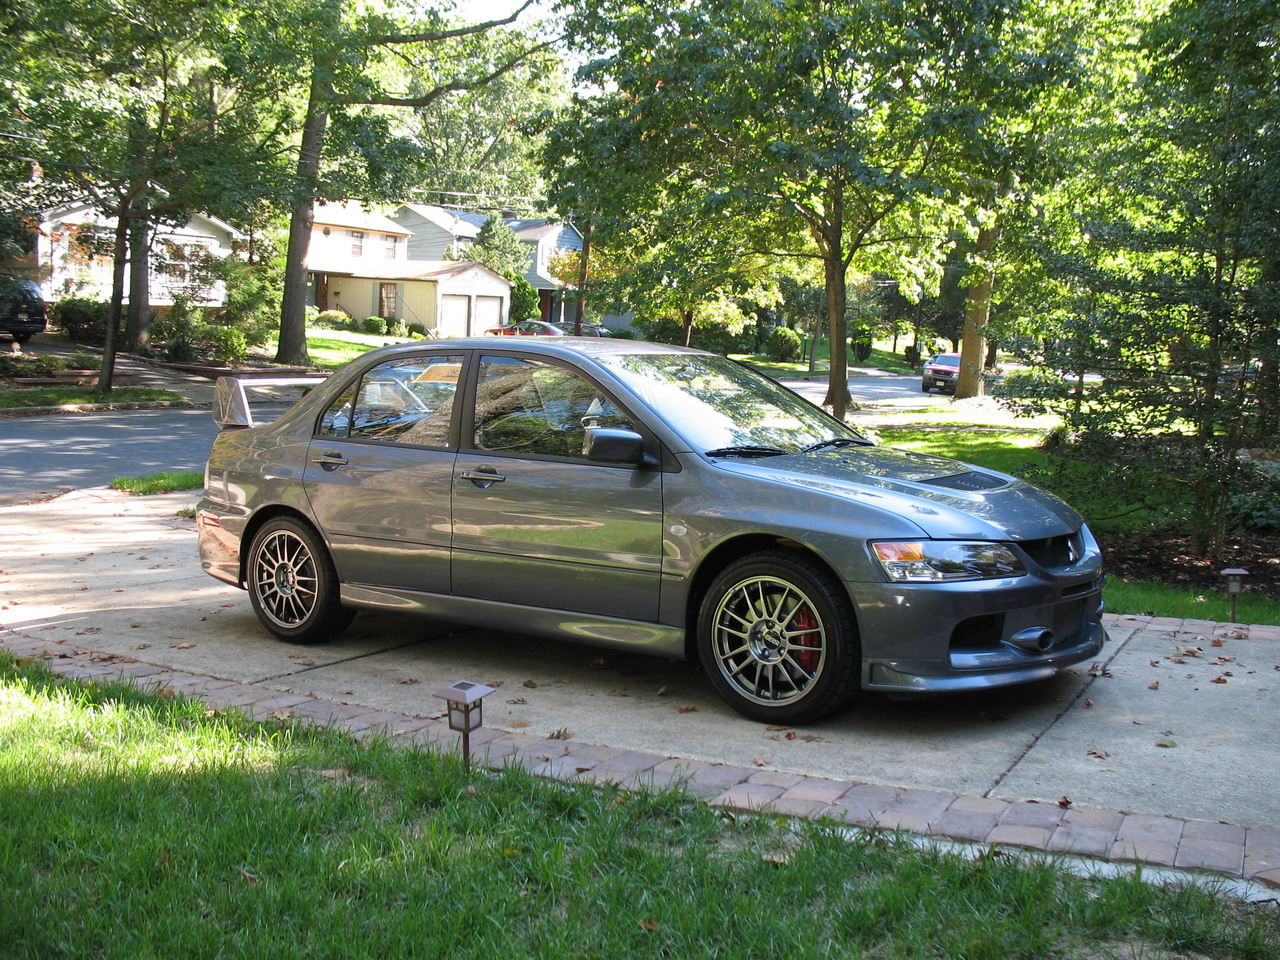 stock 2006 mitsubishi lancer evo mr 1 4 mile trap speeds 0. Black Bedroom Furniture Sets. Home Design Ideas